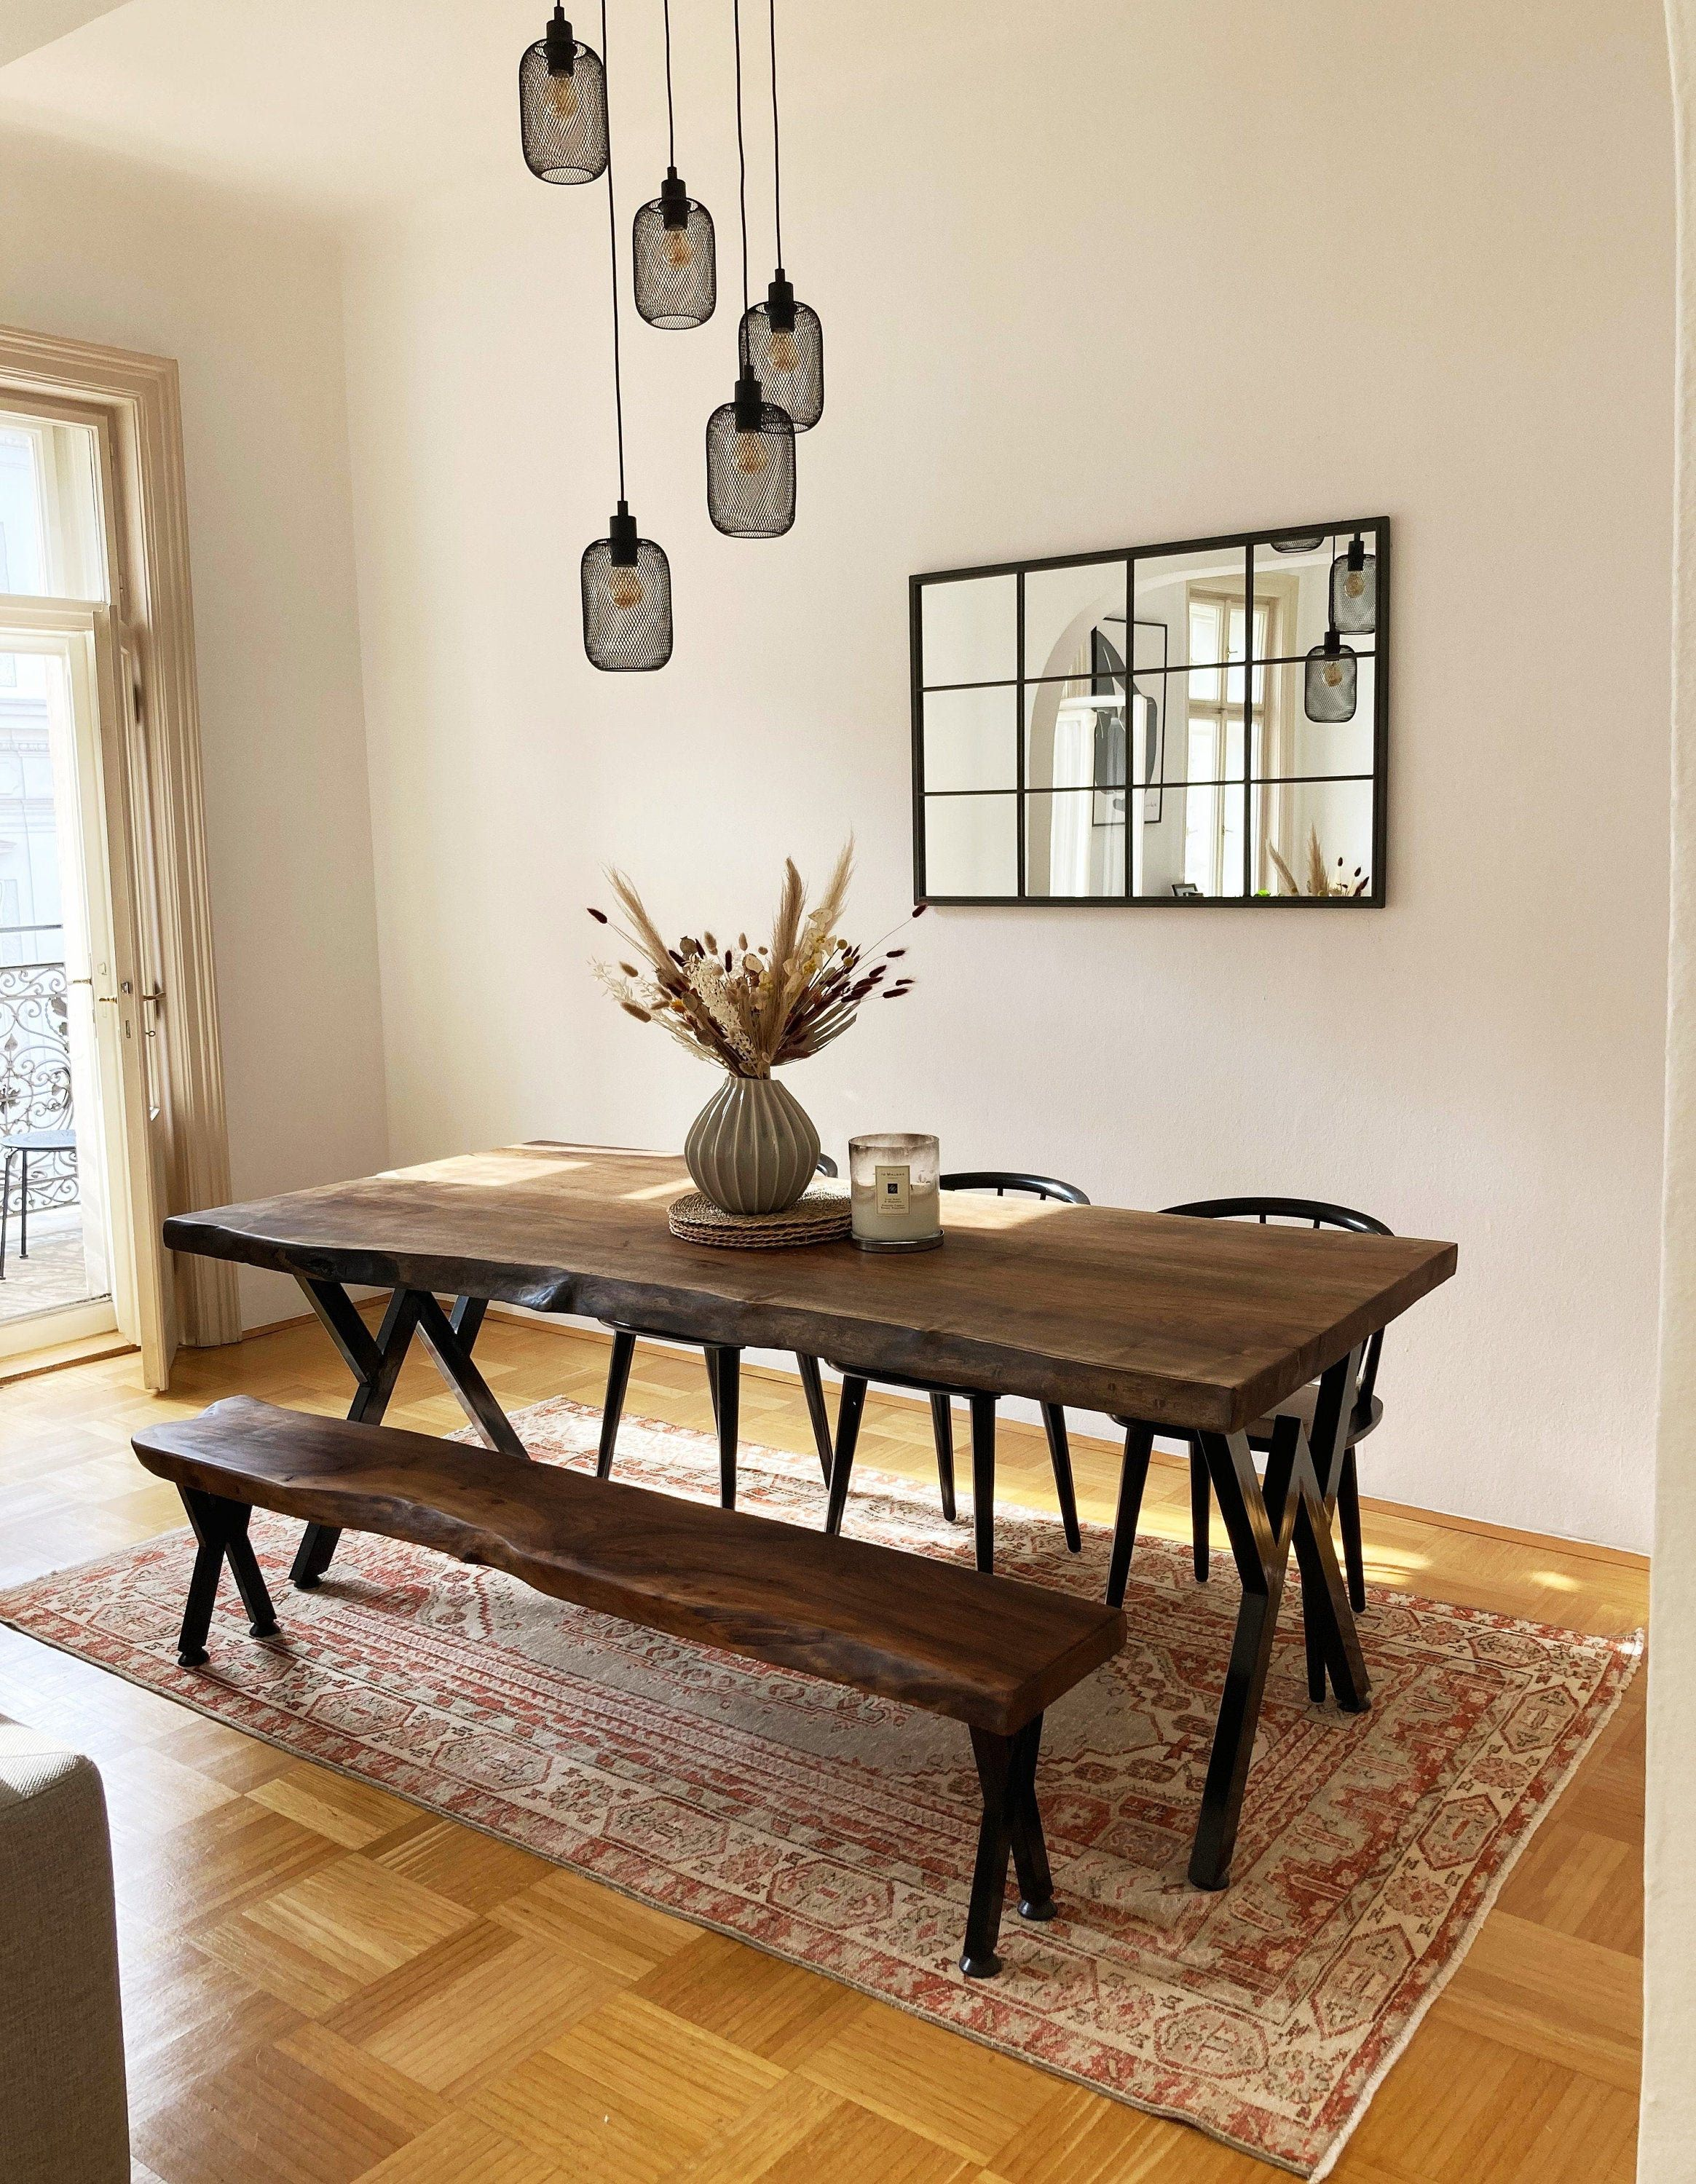 Custom Order,Walnut Table,Benches,Dining Table,Live Edge Walnut,Custom Live edge table or bench,Coffee Table,Custom Furniture,Metal Bases,